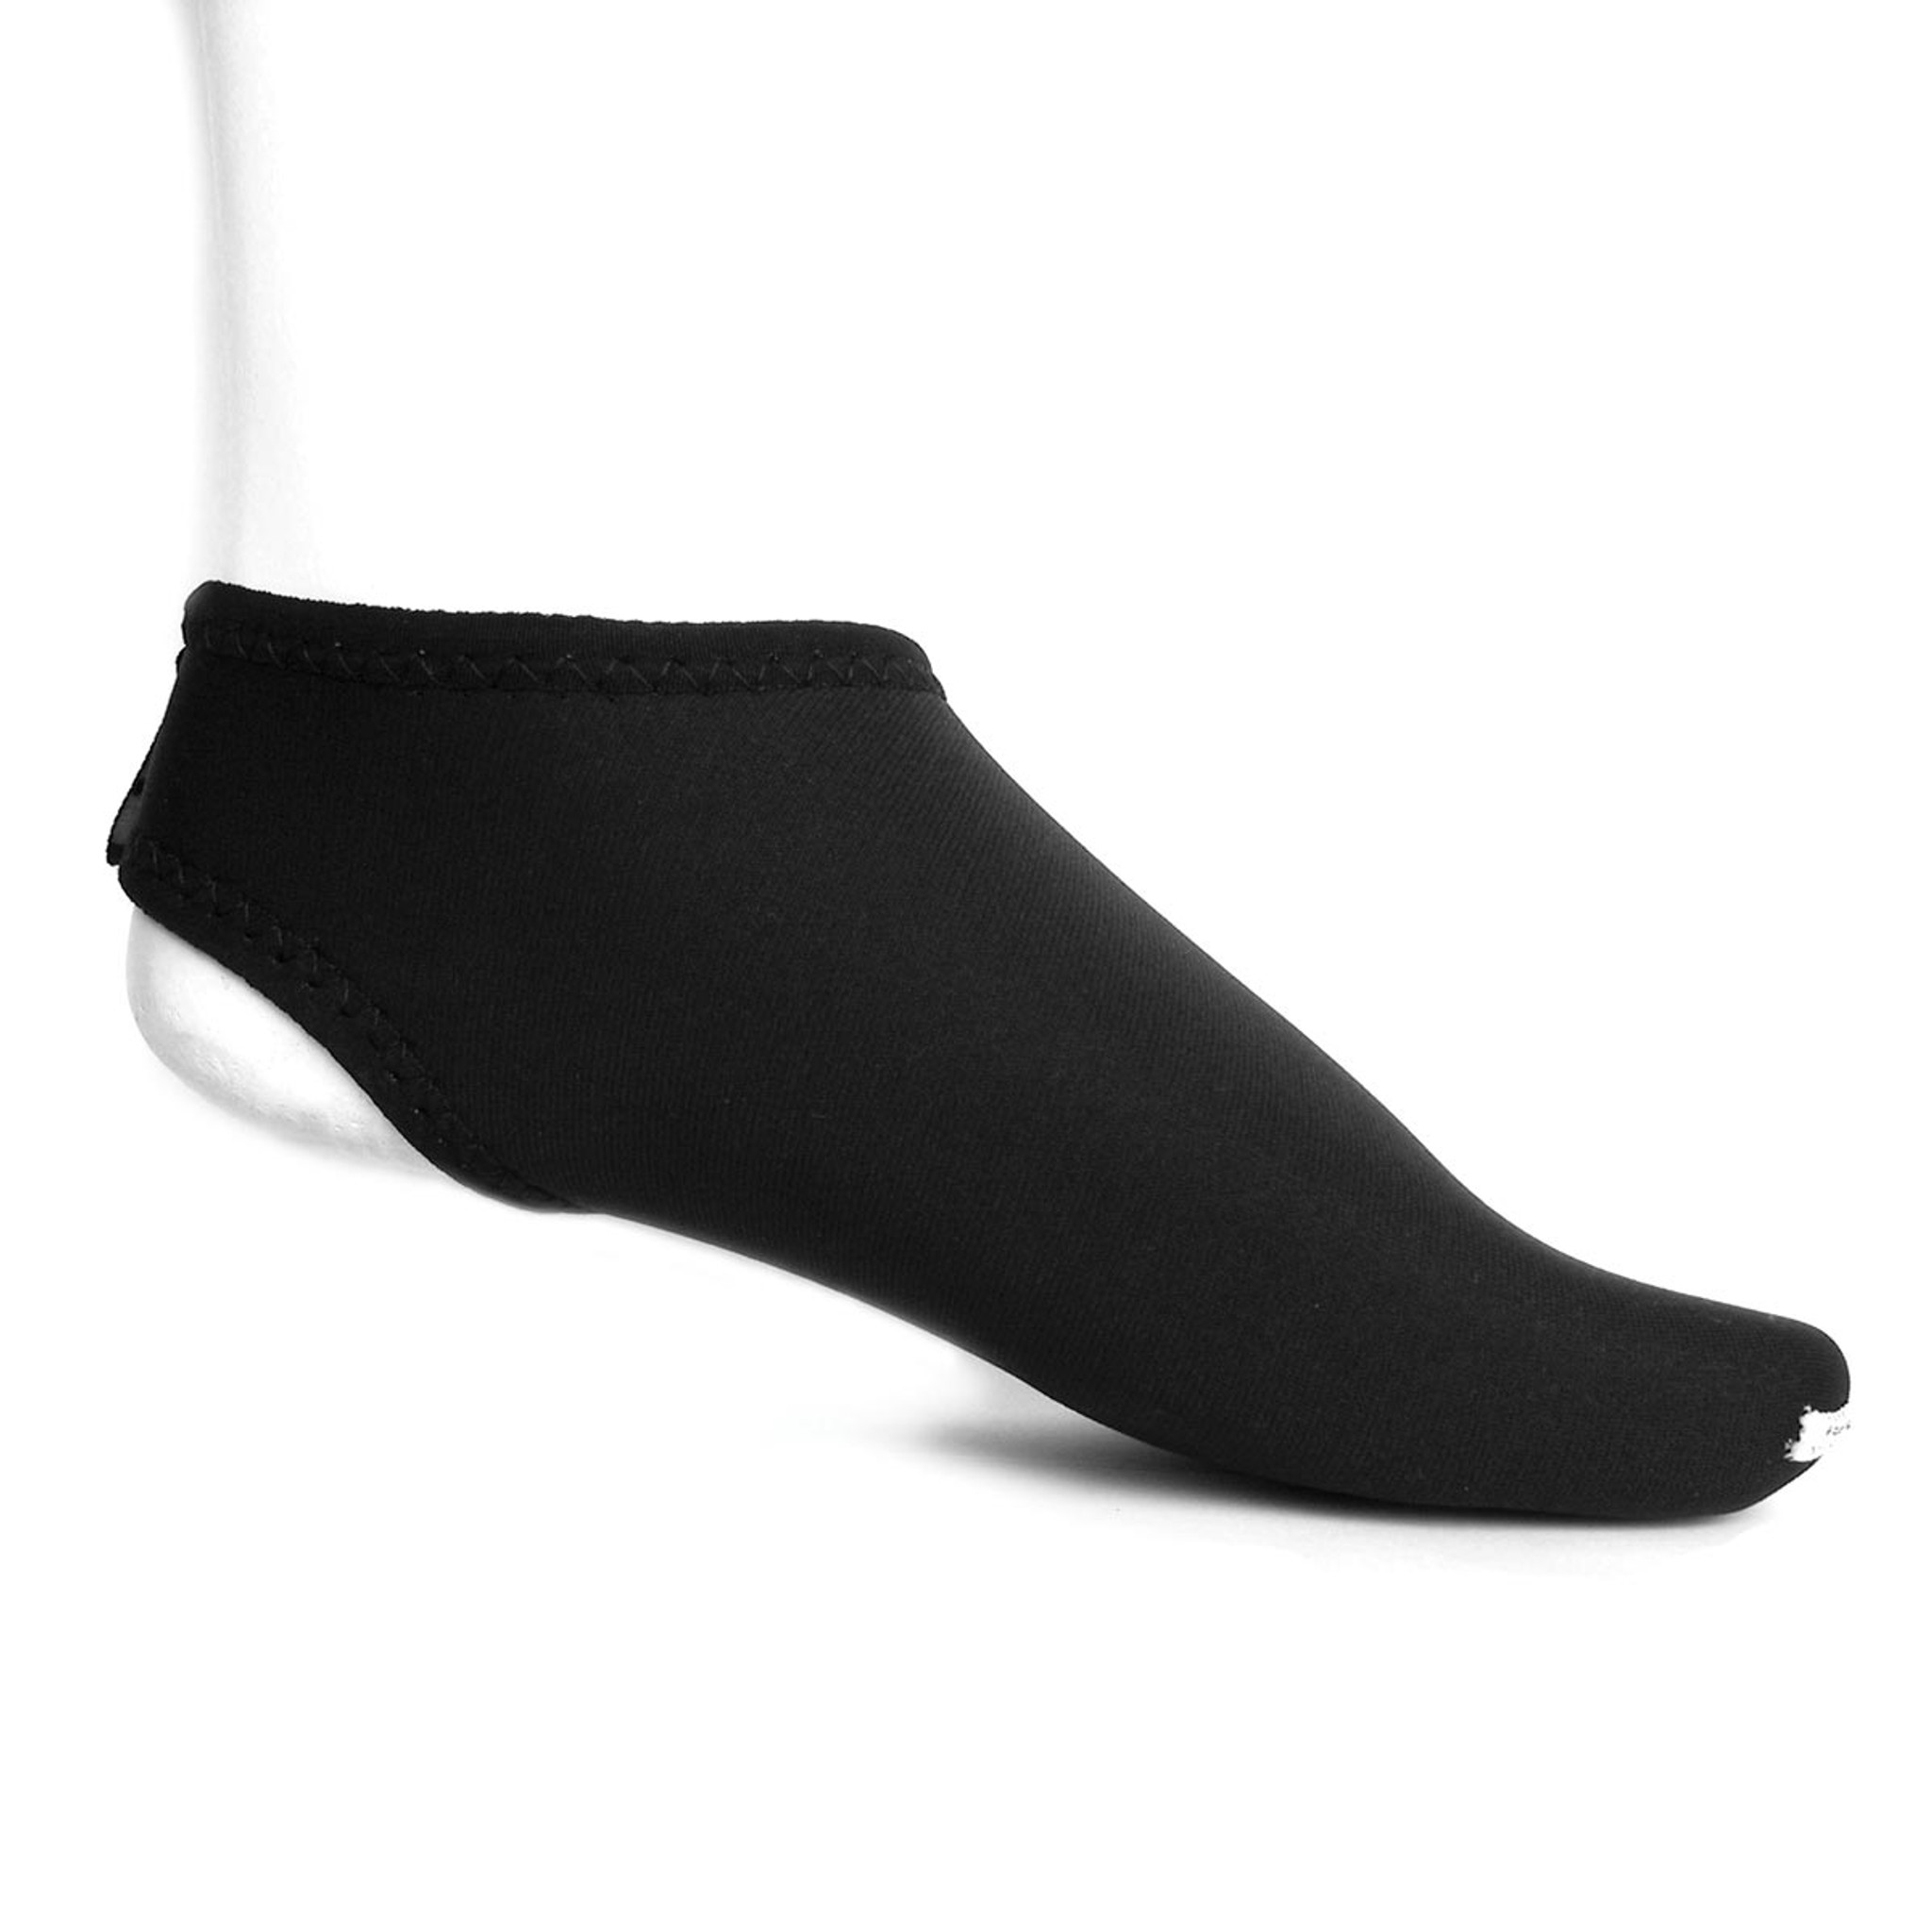 Swim Fins Socks - Flipper Socks - Neoprene Socks